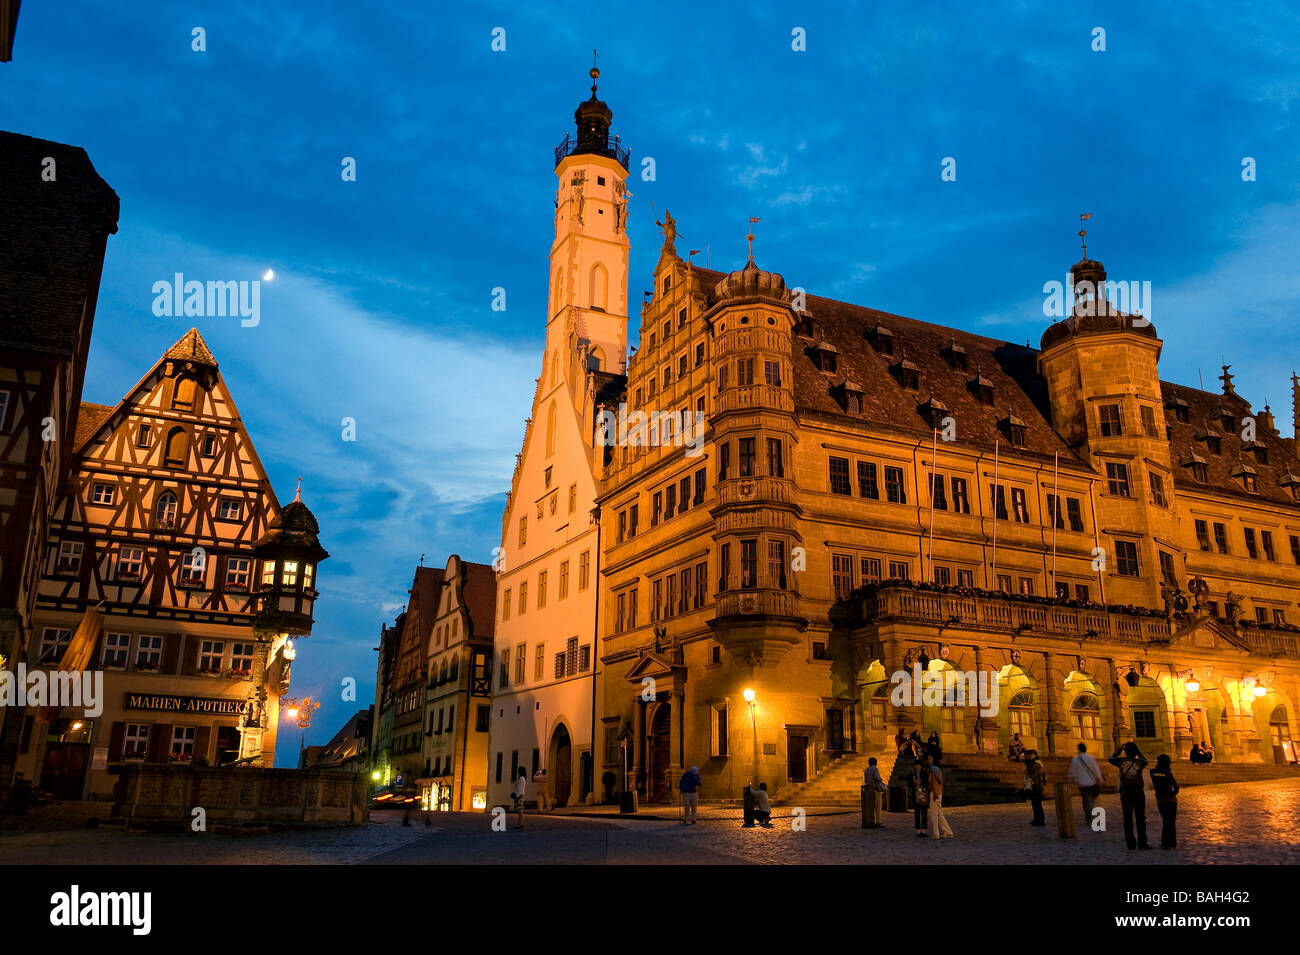 deutschland bayern romantische stra e romantische stra e rothenburg ob der tauber stockfoto. Black Bedroom Furniture Sets. Home Design Ideas